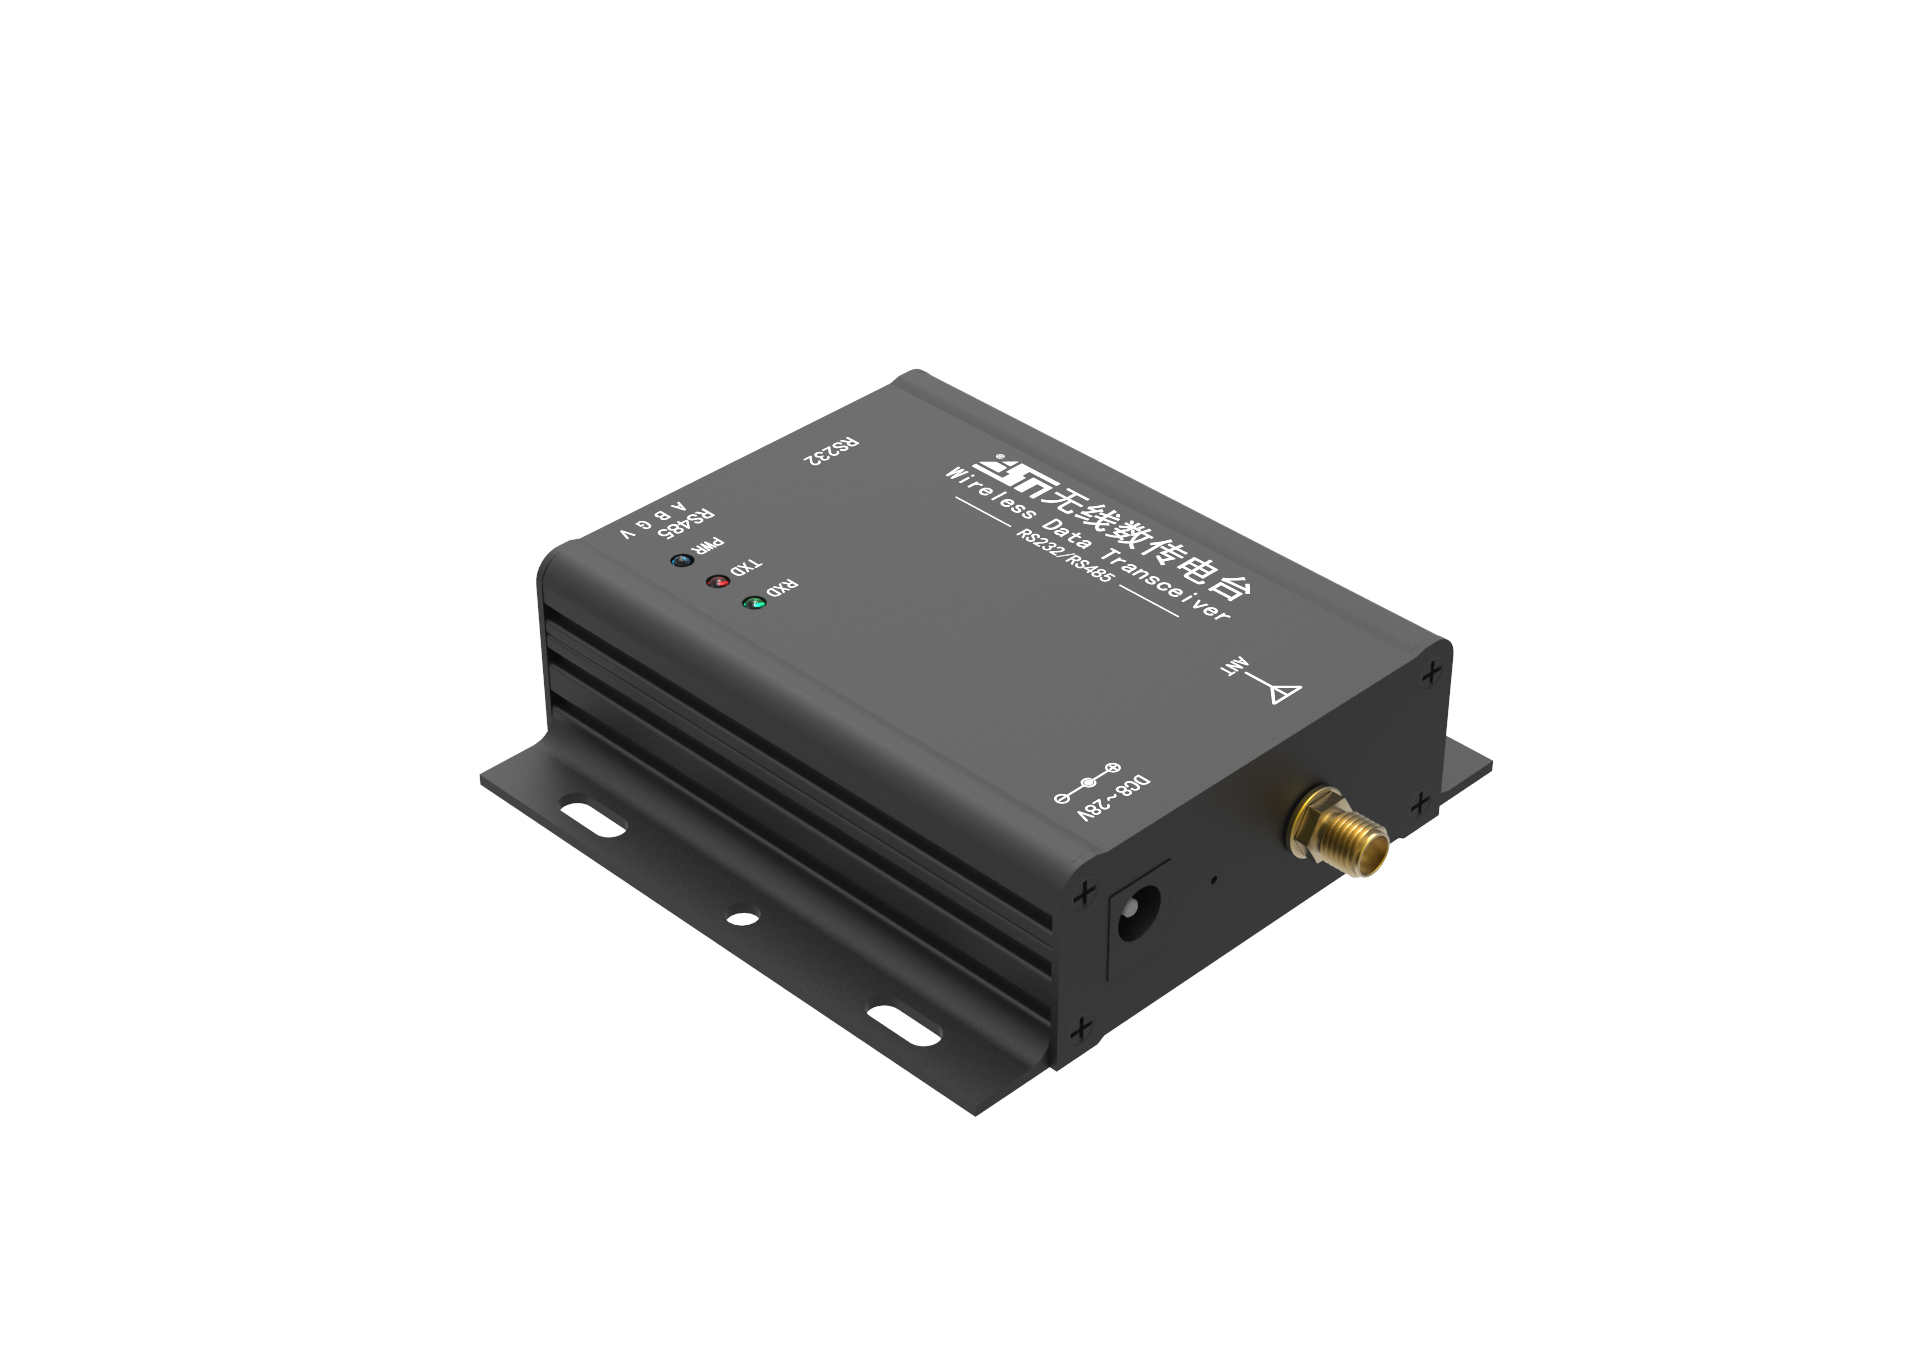 Rs232 Rs485 Modbus 433mhz 4.5km Wireless Gfsk Data Transceiver